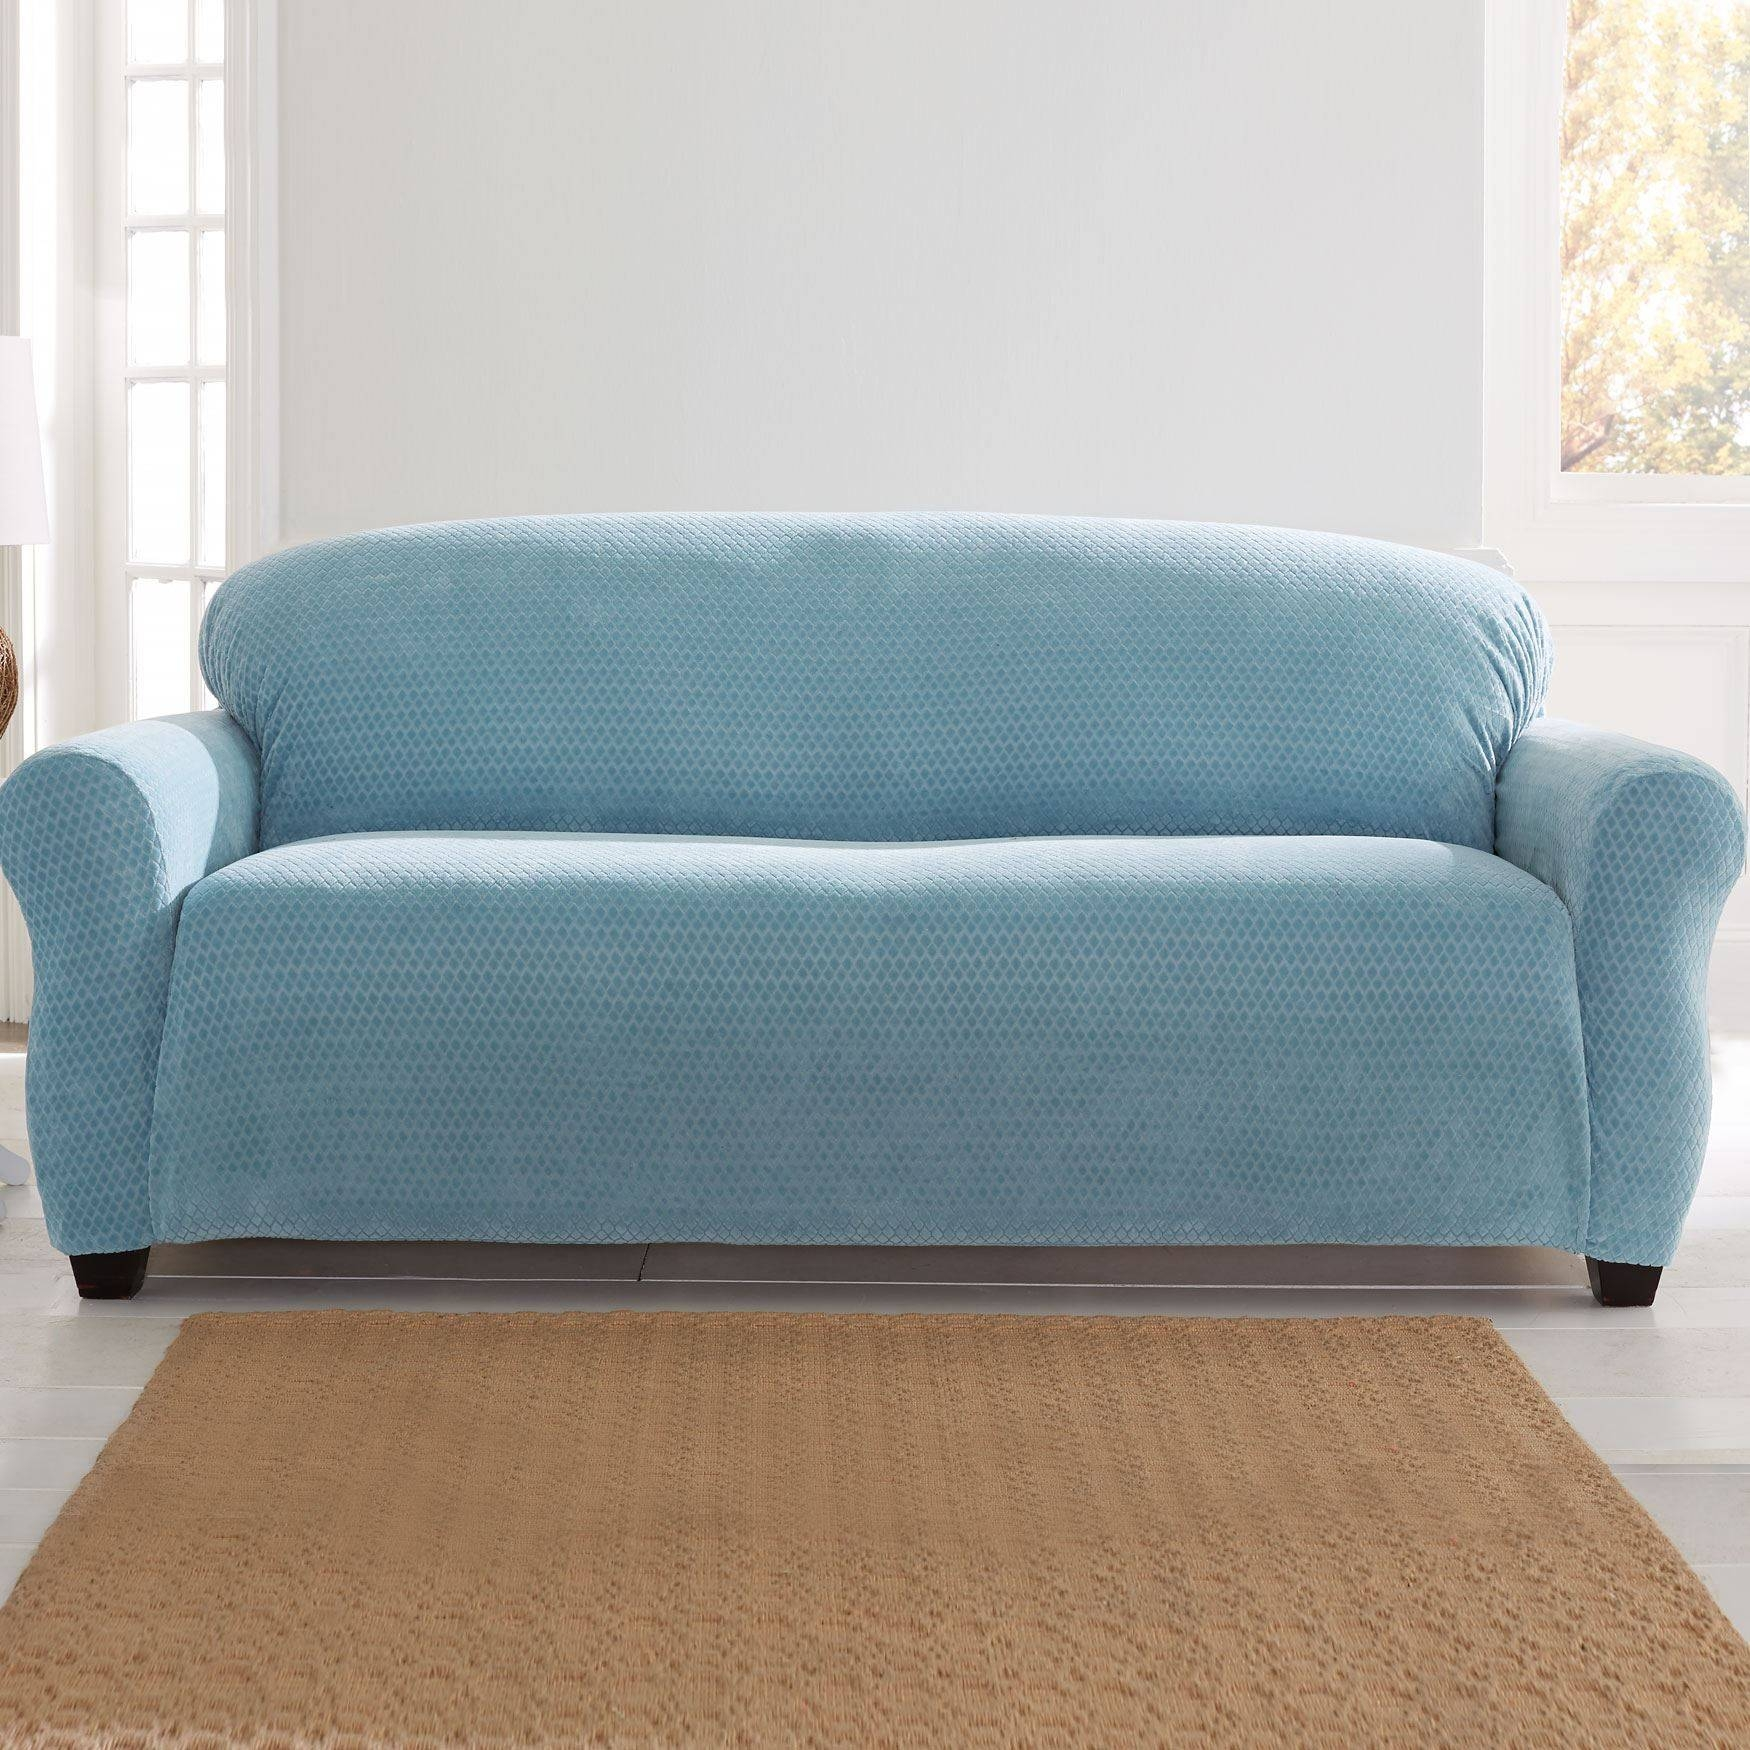 Brylanehome® Studio Stretch Diamond Extra Long Sofa Slipcover throughout Stretch Slipcovers For Sofas (Image 1 of 15)